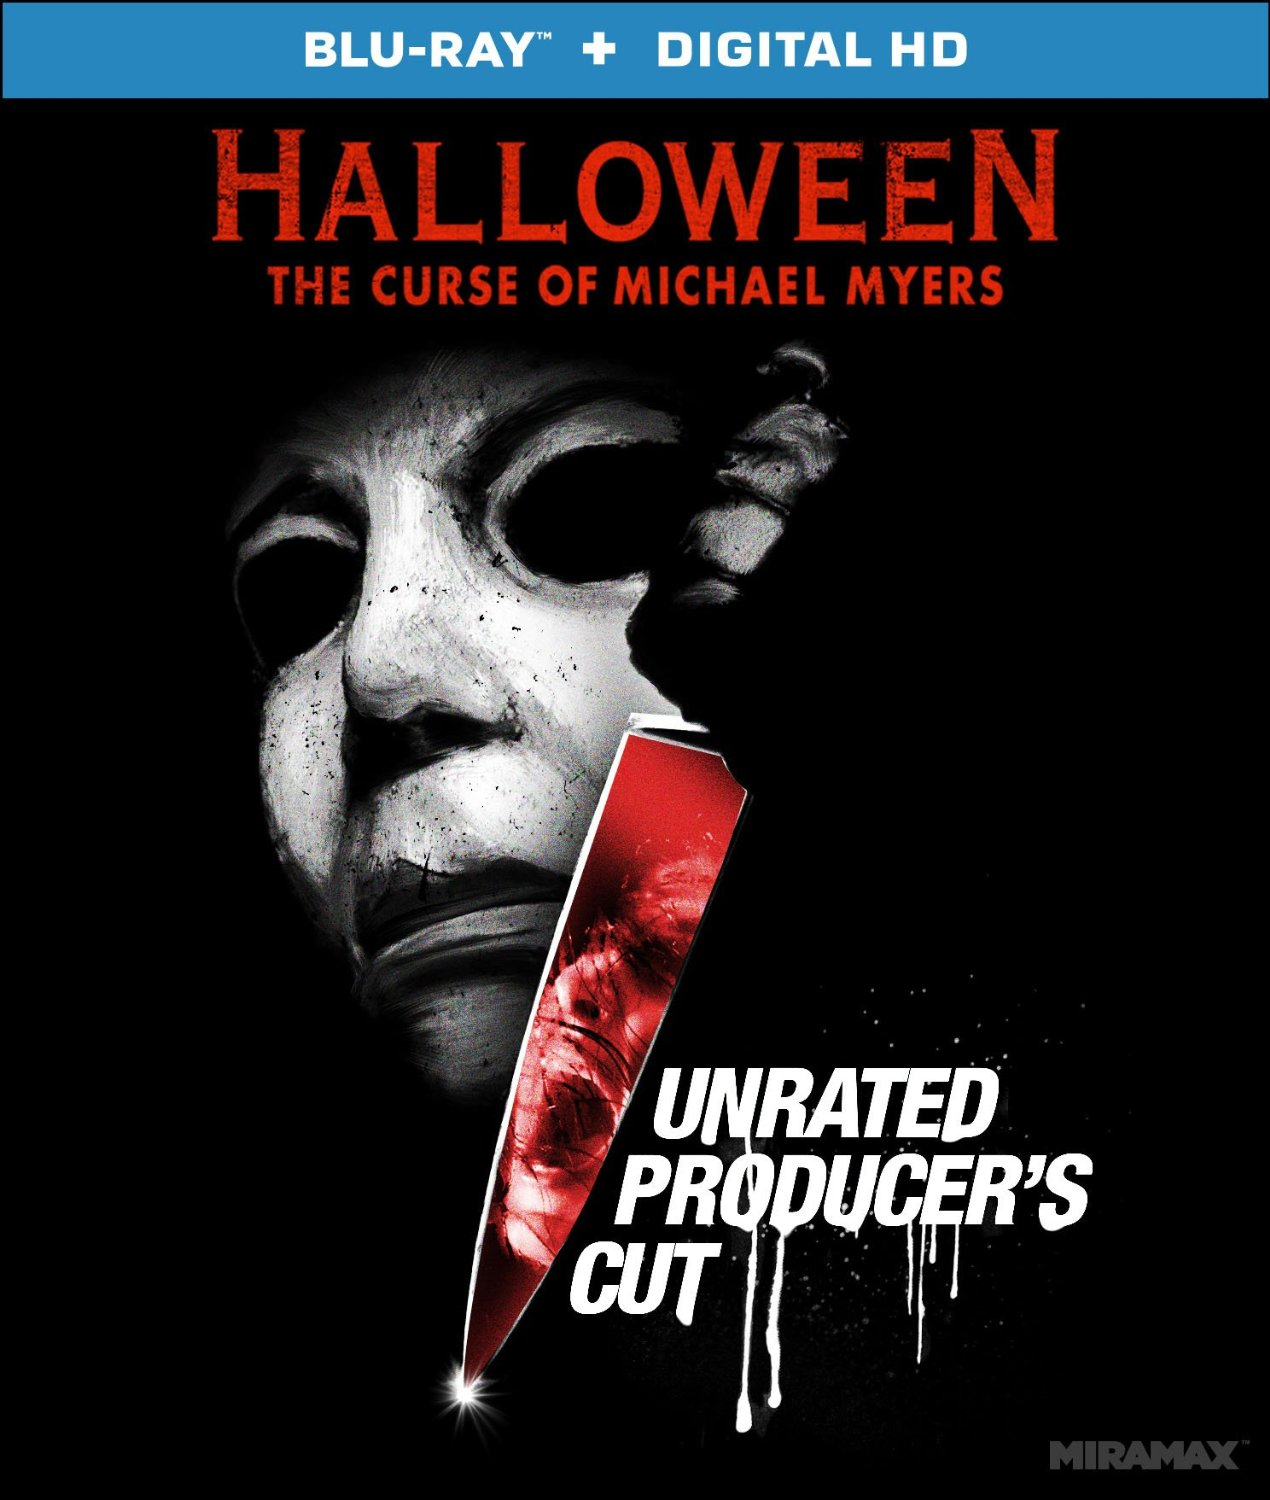 the horrors of halloween: halloween 6 the producer's cut new blu-ray